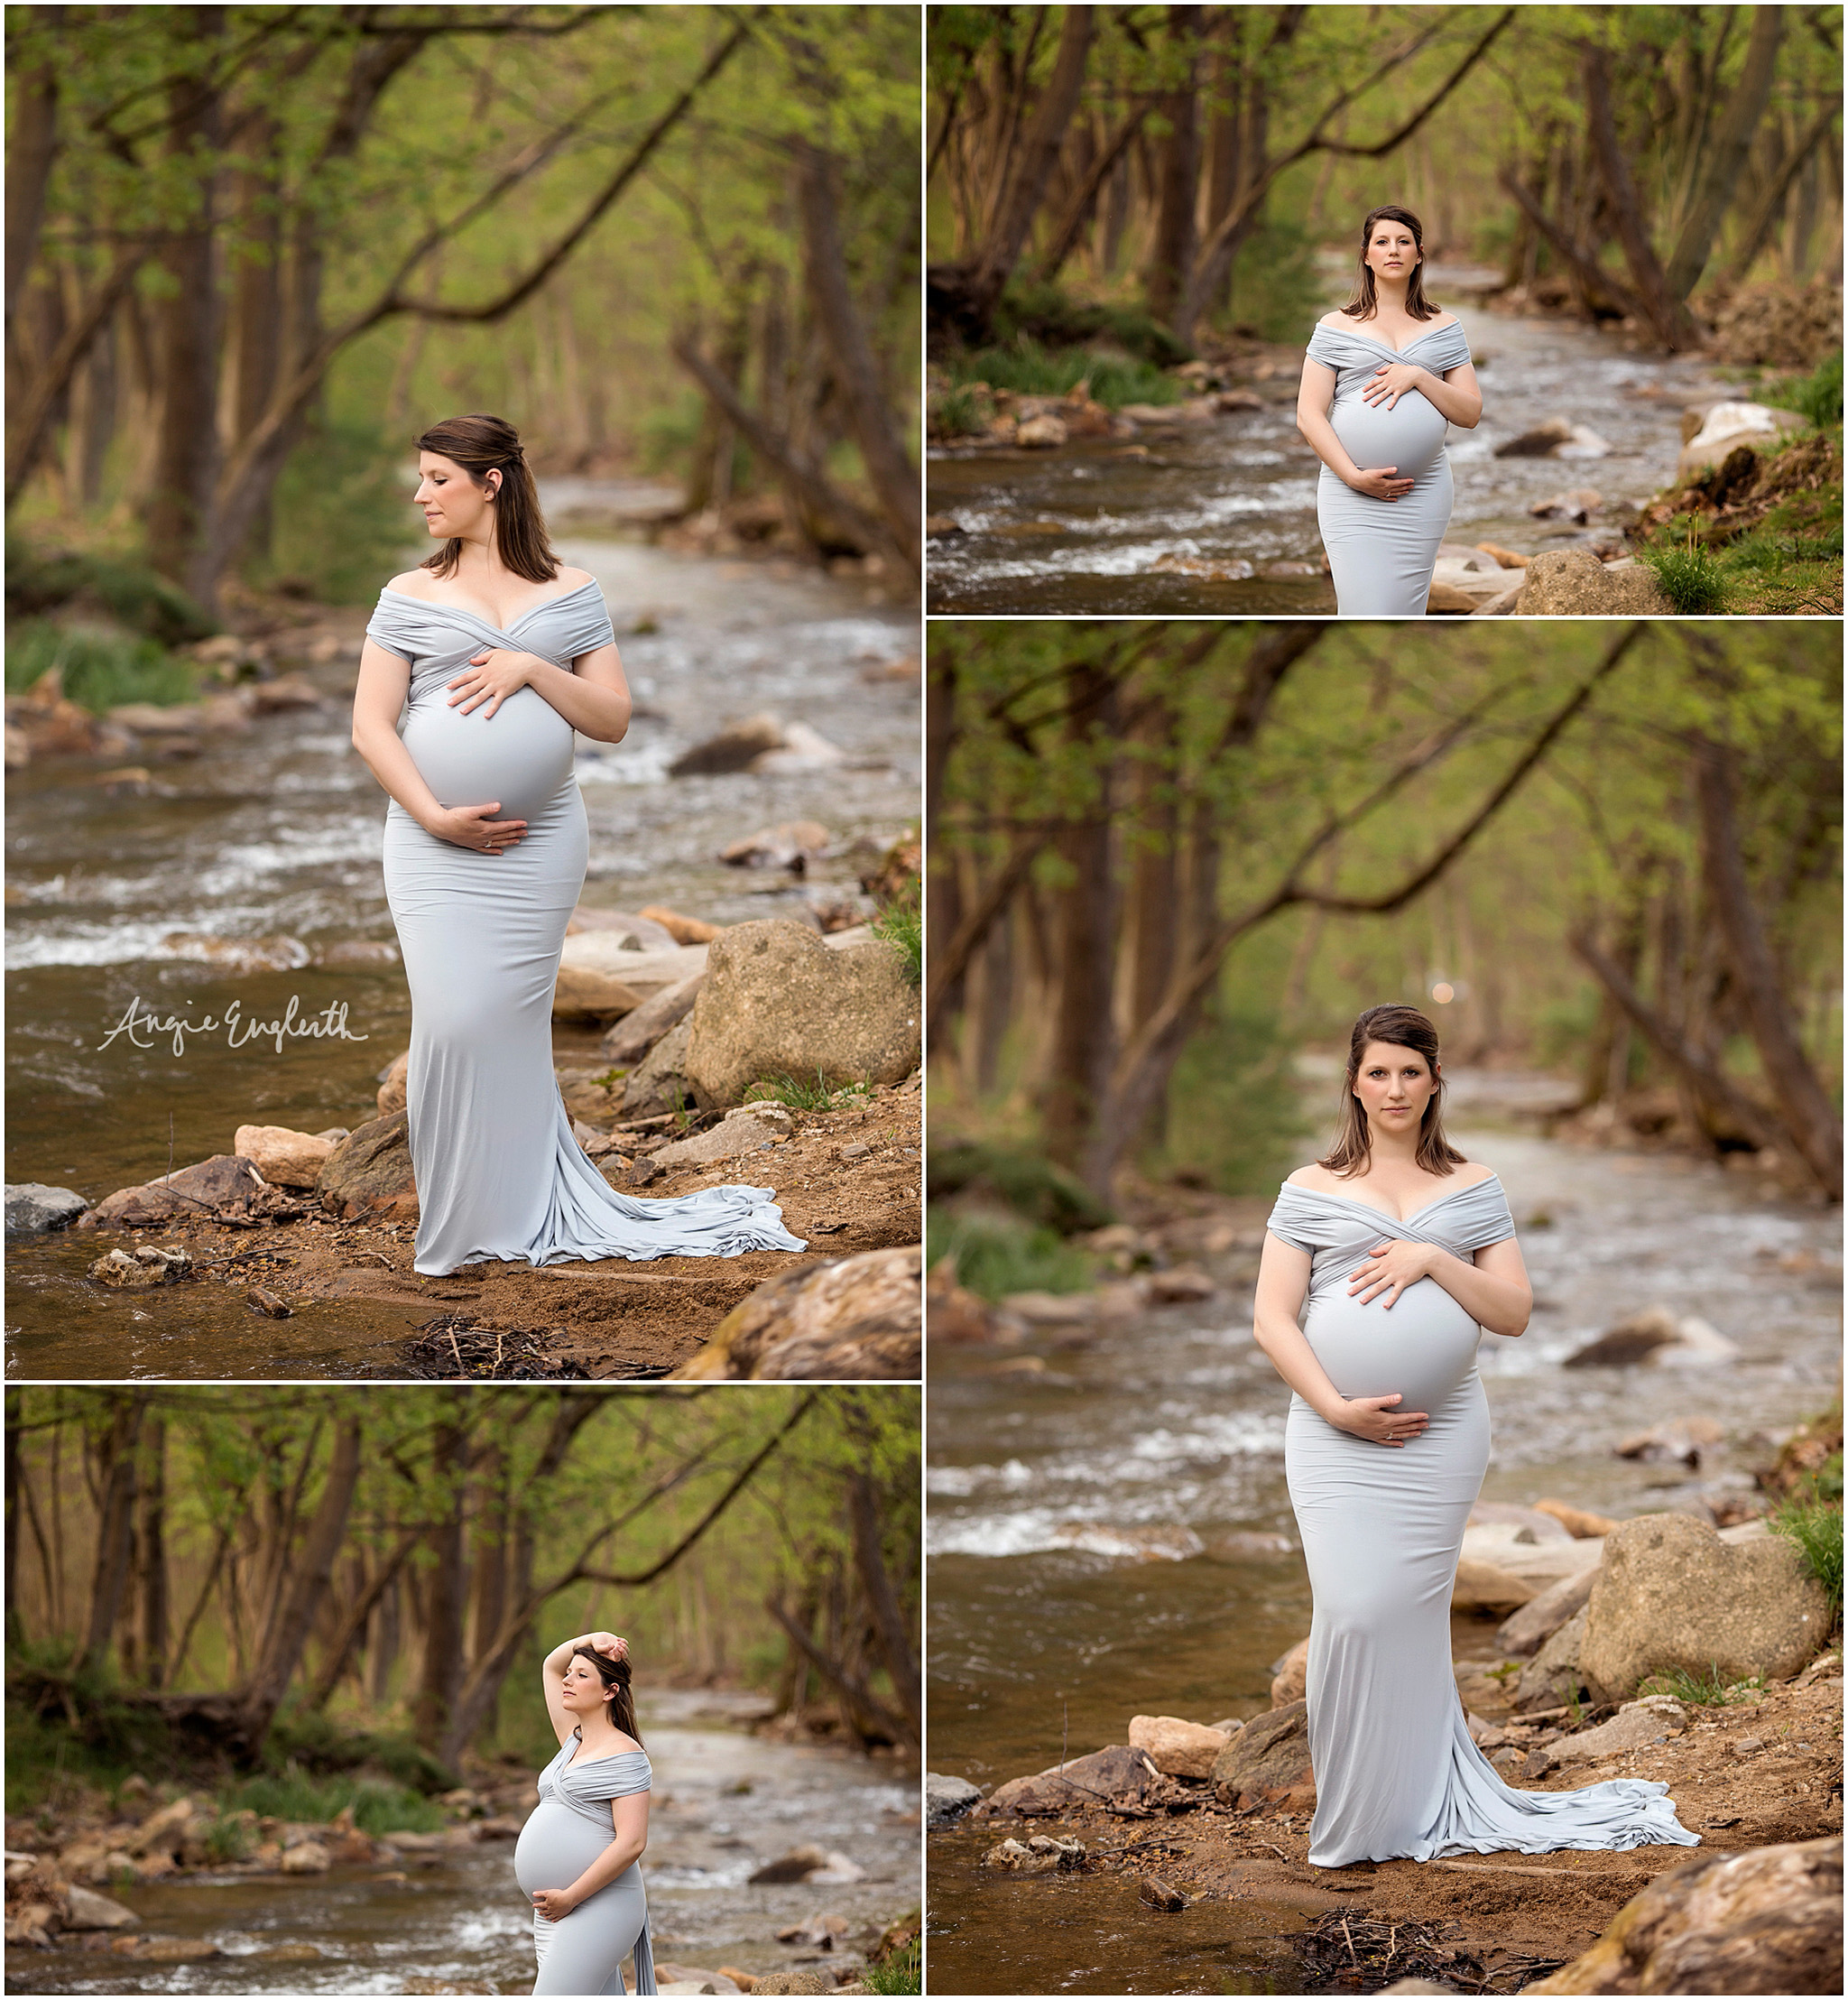 lancaster_maternity_photographer_angie_englerth_lancaster_central_pa_aep_019.jpg